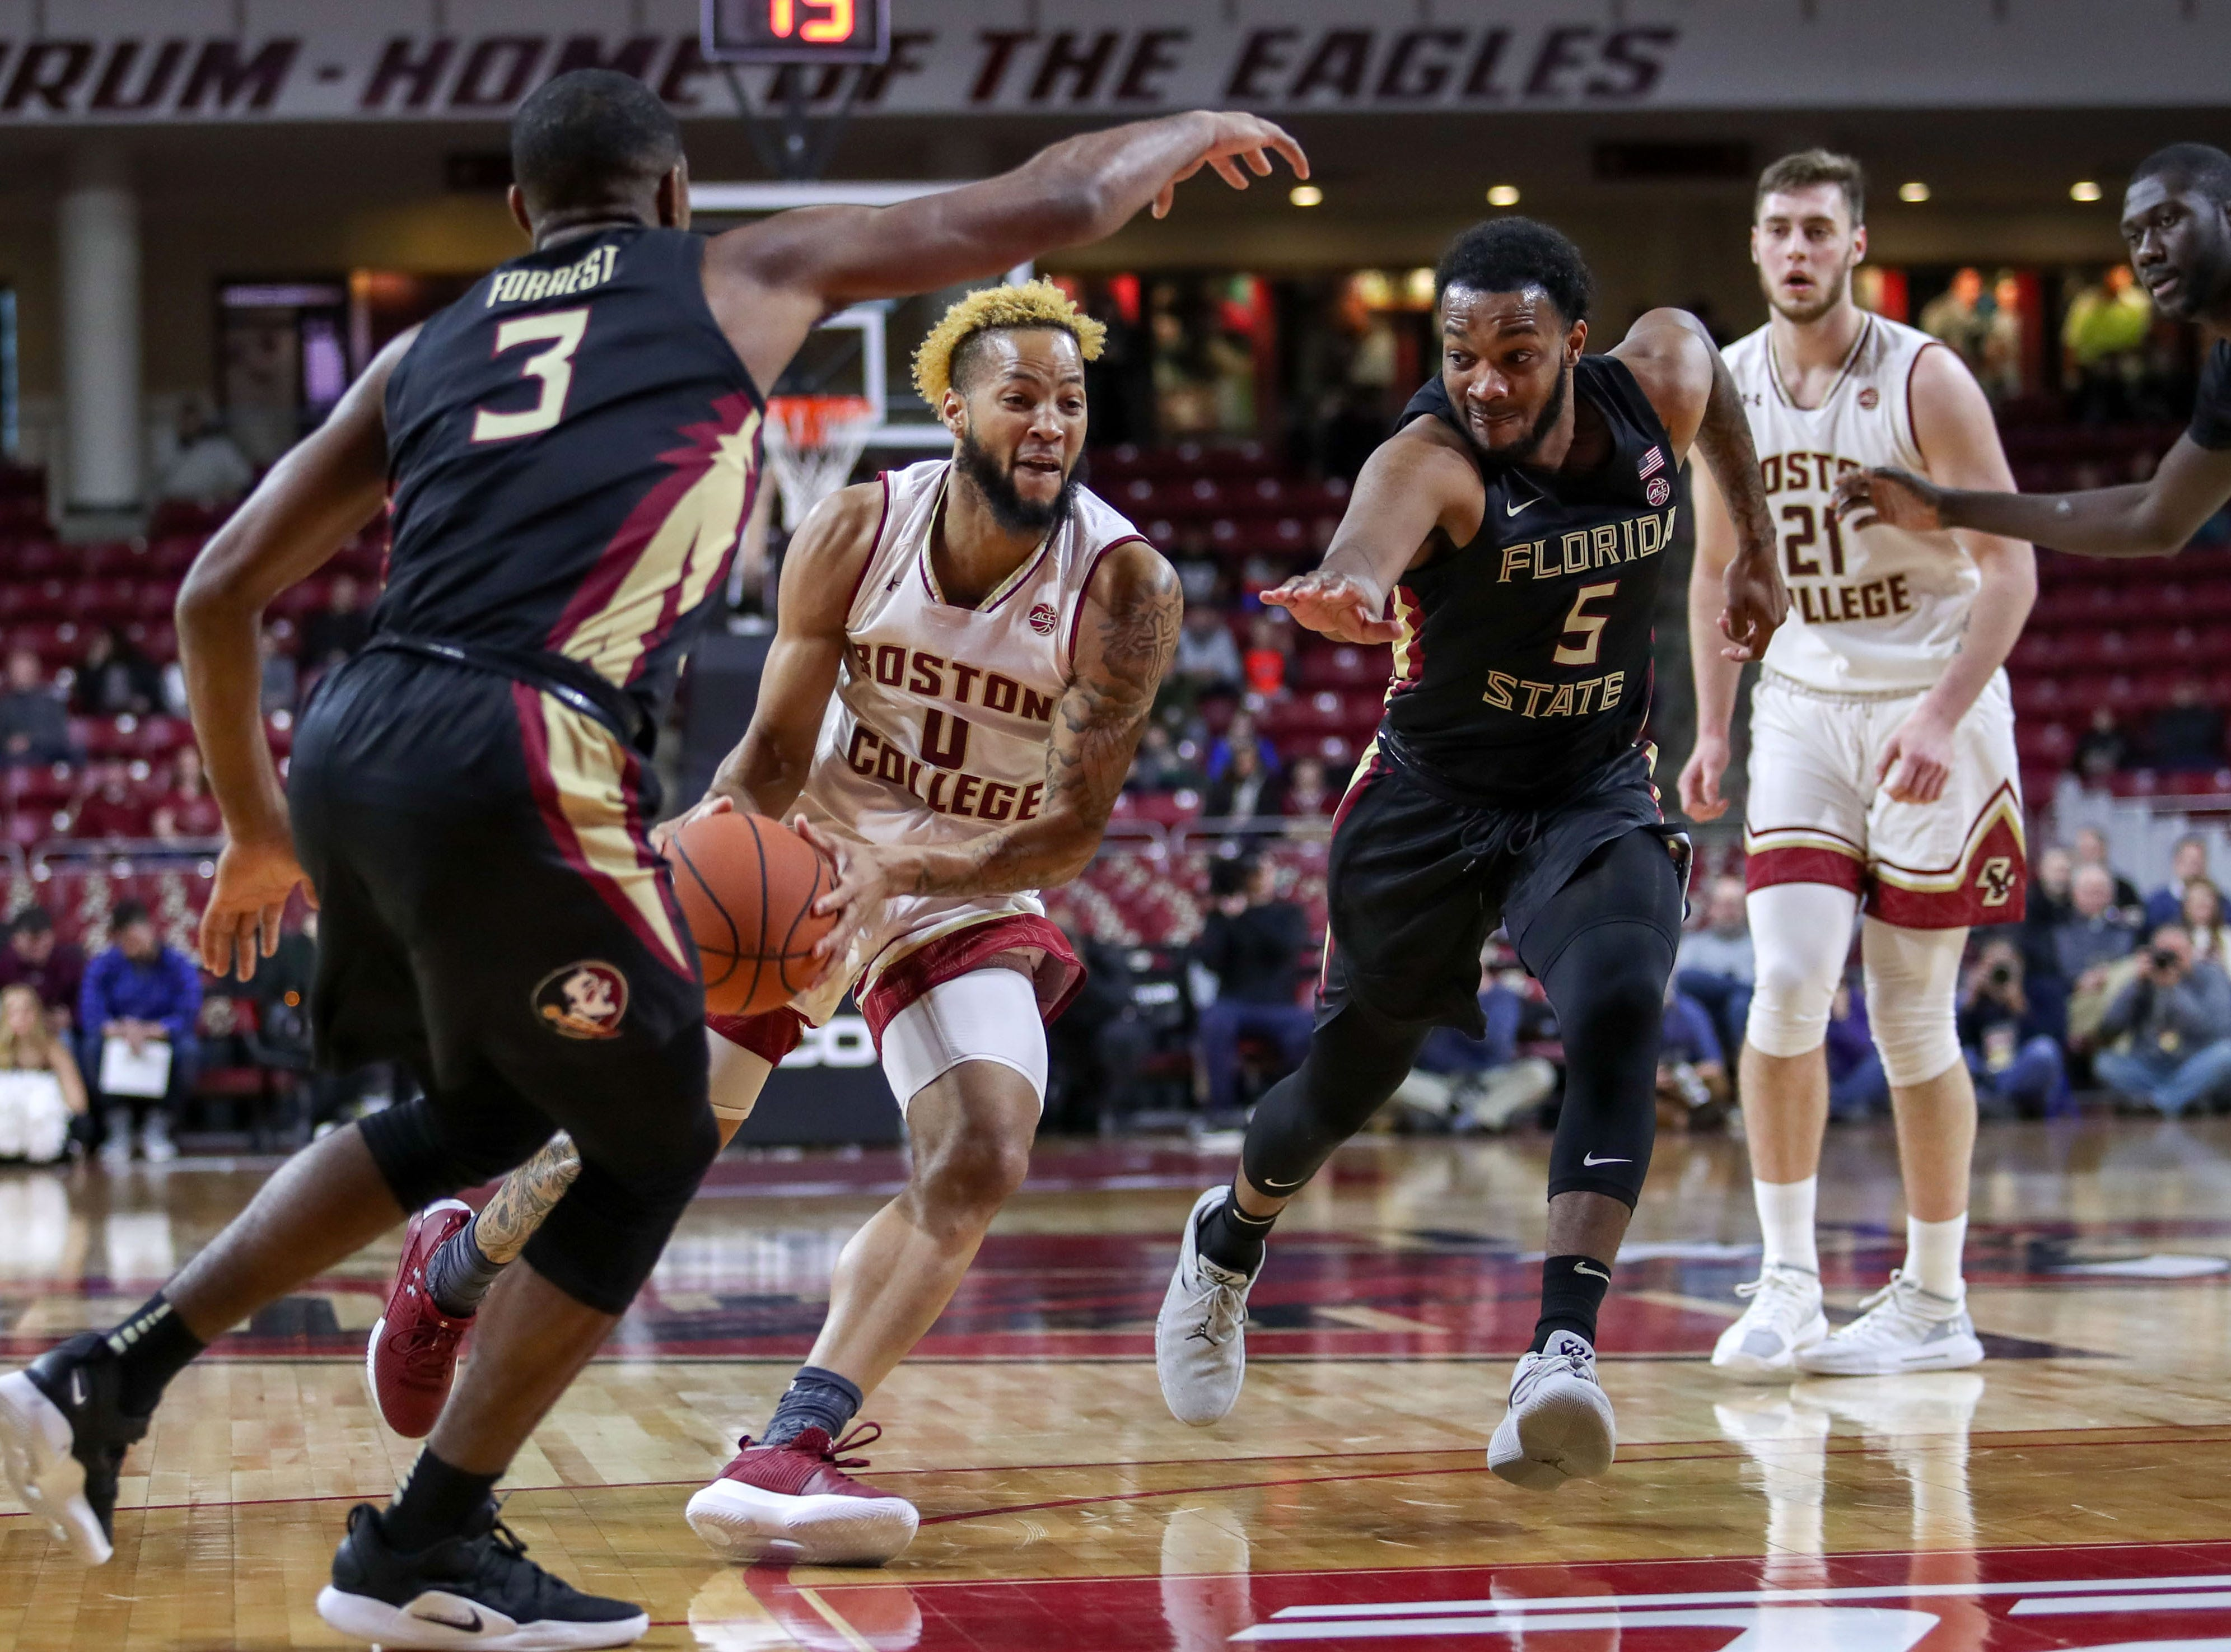 Jan 20, 2019; Chestnut Hill, MA, USA; Boston College Eagles guard Ky Bowman (0) drives to the basket against the Florida State Seminoles during the first half at Conte Forum. Mandatory Credit: Paul Rutherford-USA TODAY Sports